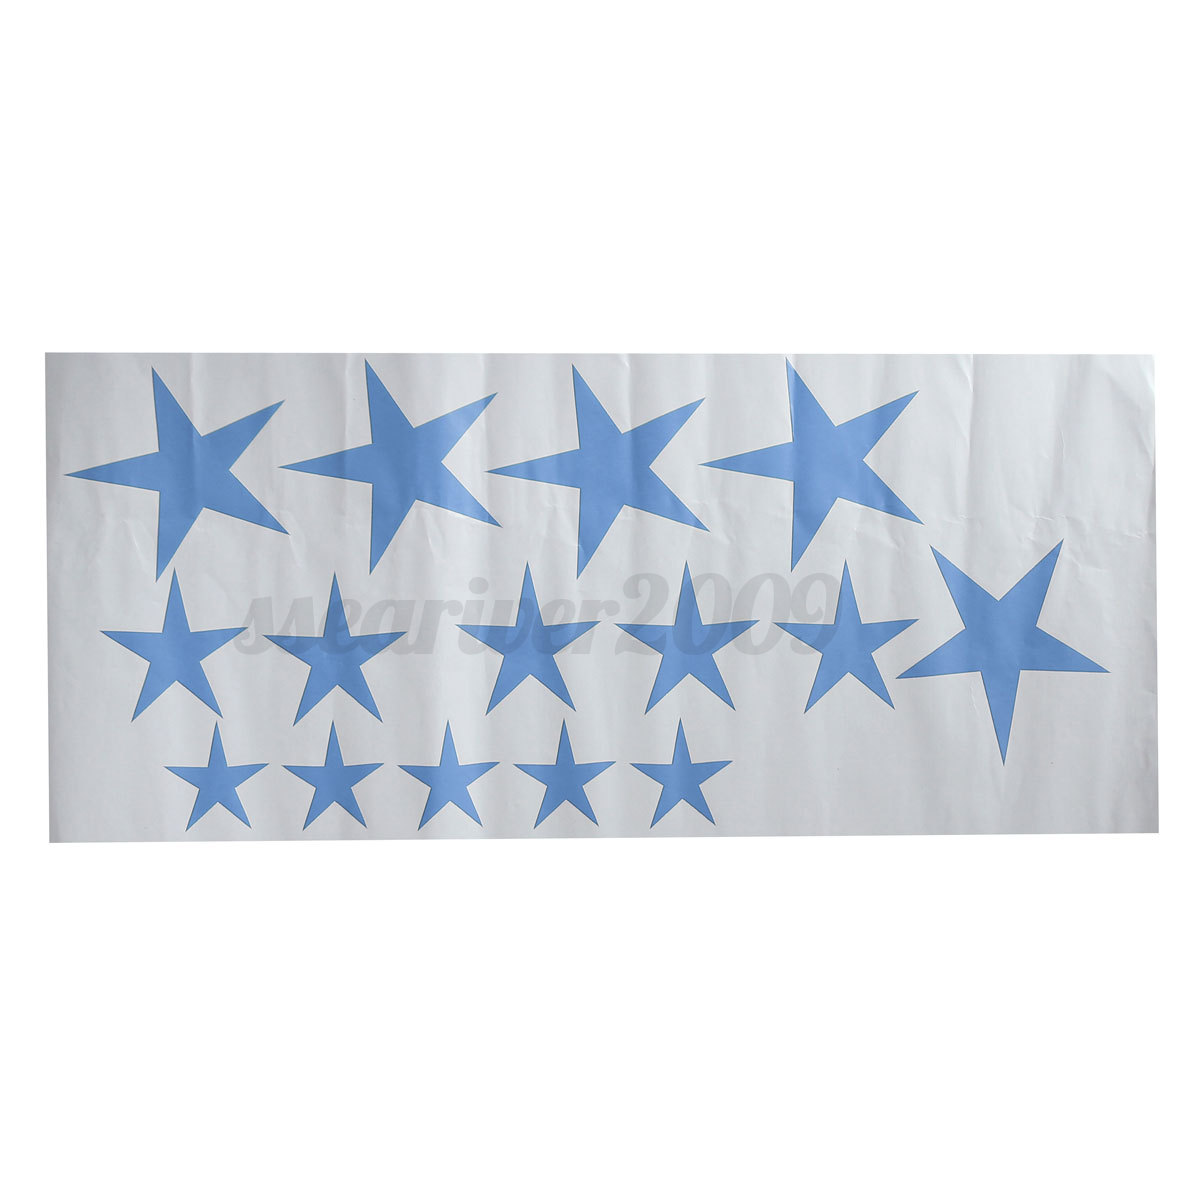 Removable 15Pcs Stars Wall Stickers Art Vinyl Decals For